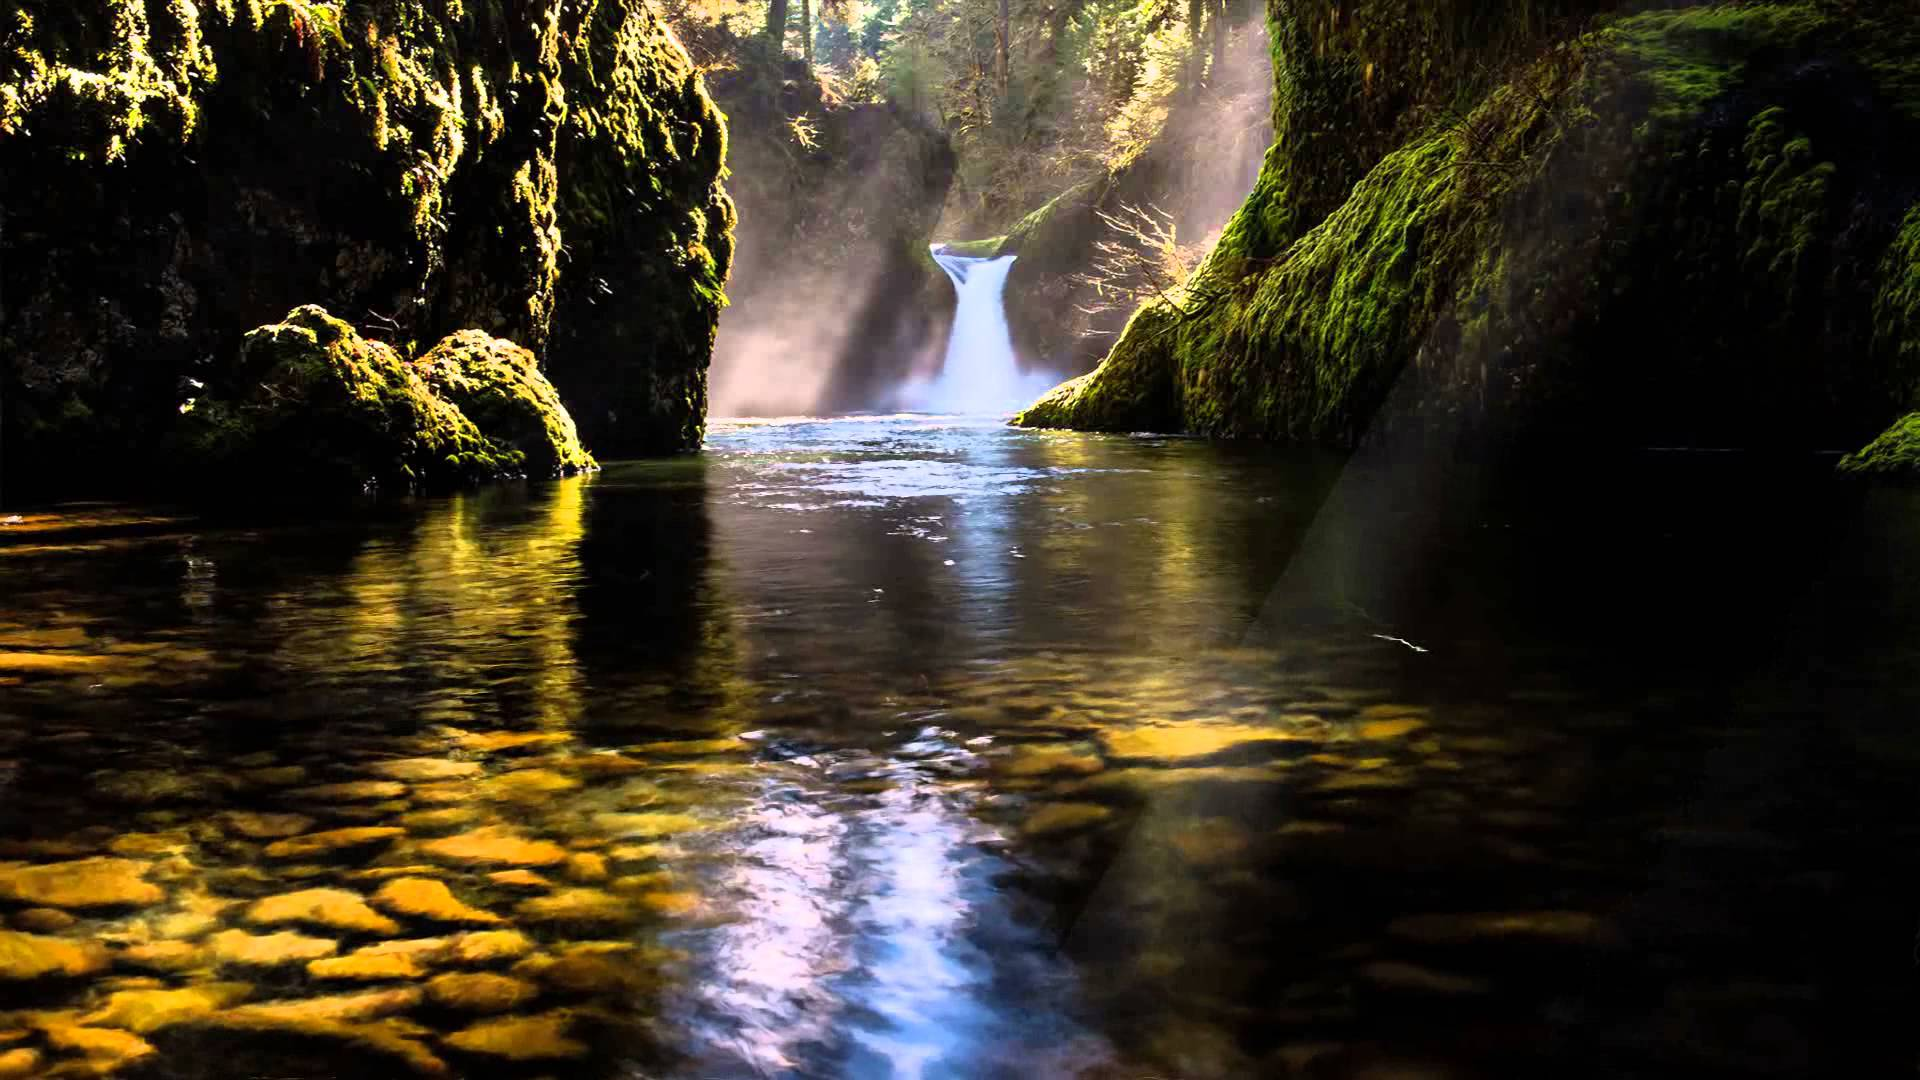 Free Desktop Waterfall Hd Wallpapers